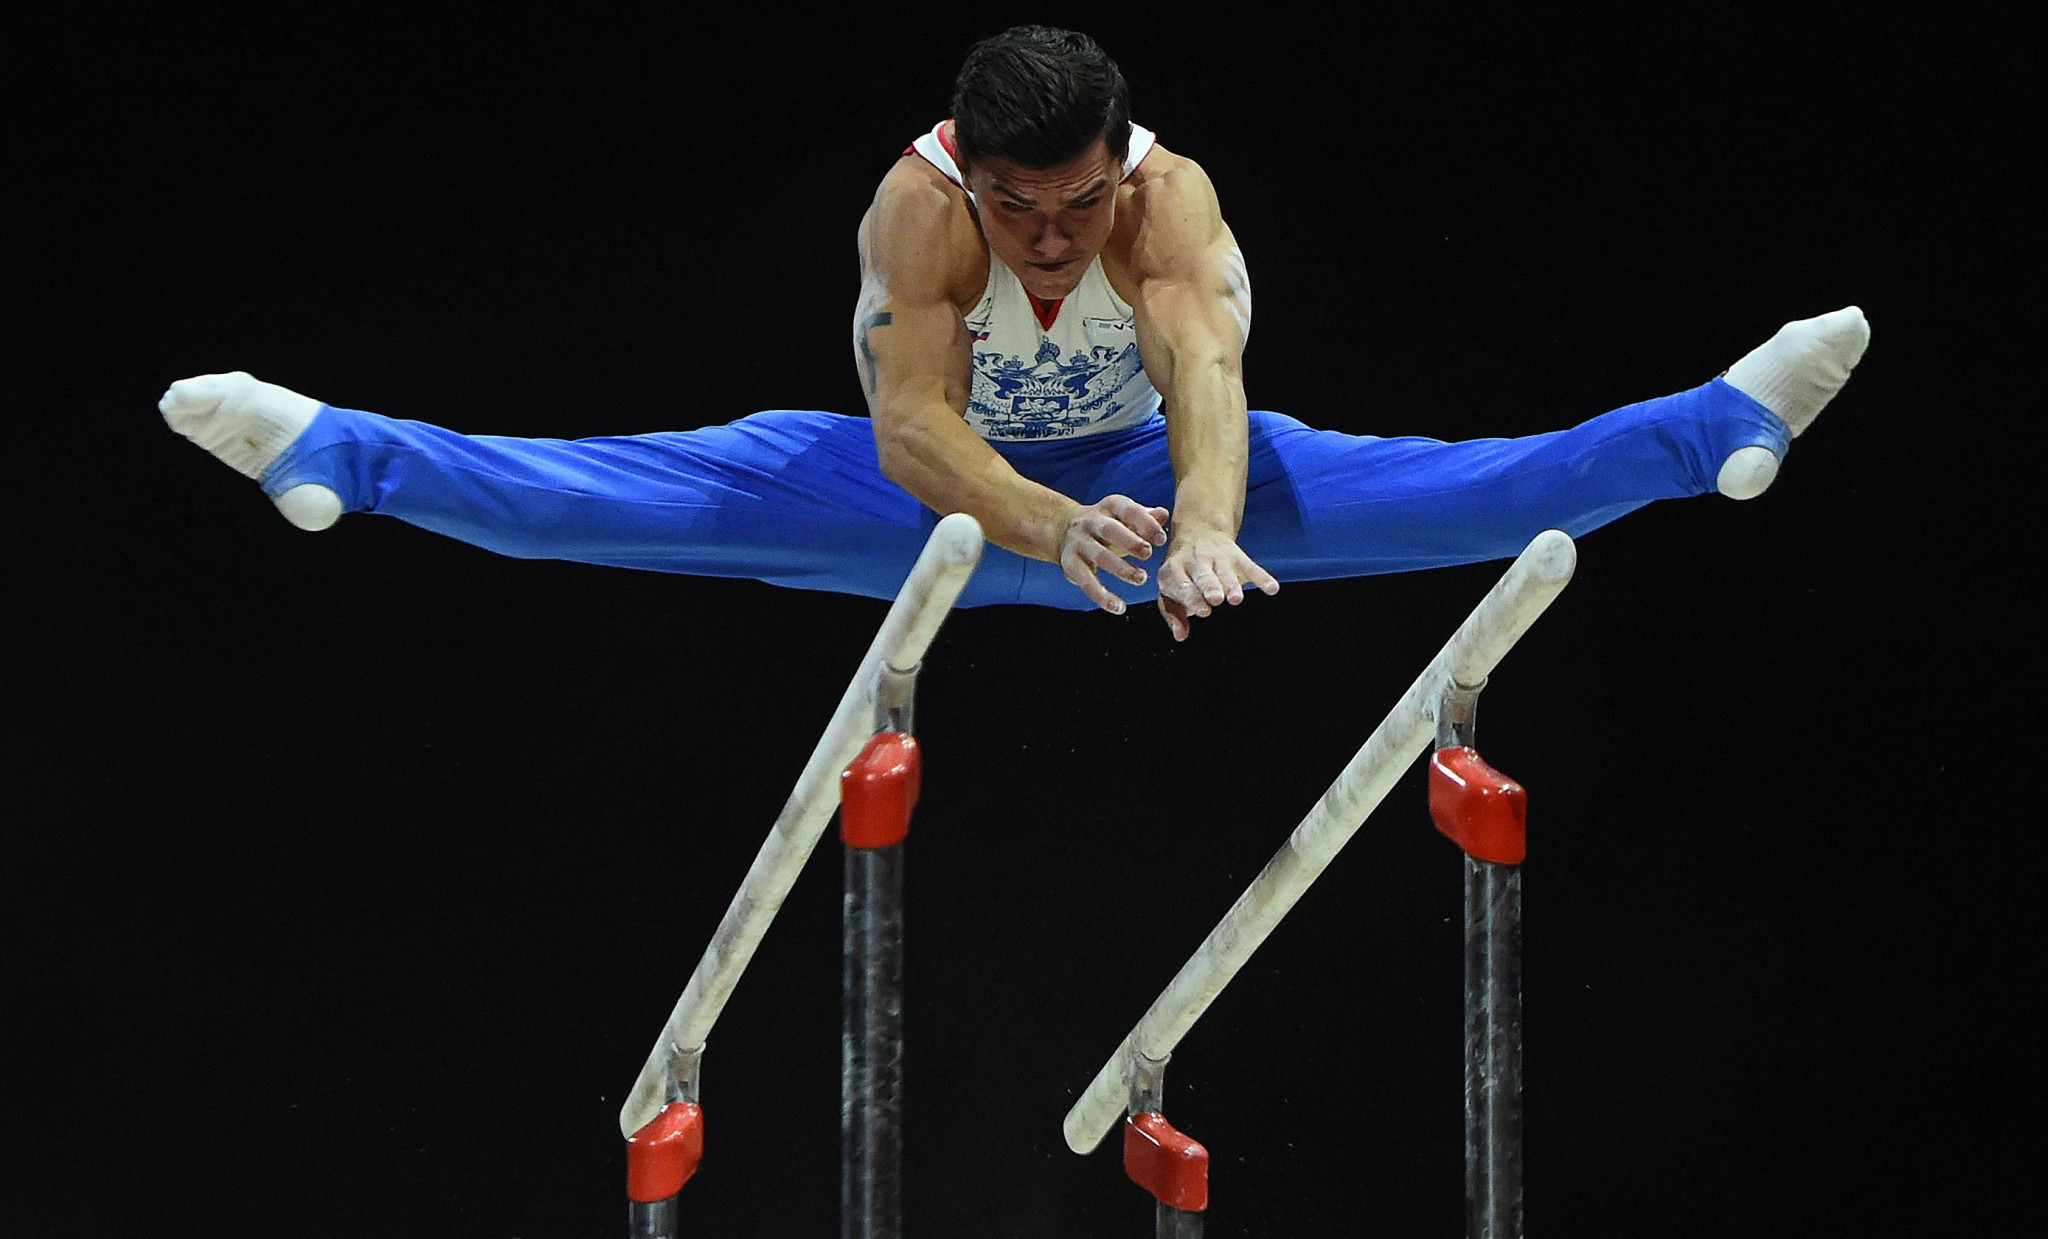 Russia's Artur Dalaloyan claimed the vault and parallel bars gold medals as men's artistic gymnastics action concluded today at the Glasgow 2018 European Championships with the apparatus finals ©Getty Images